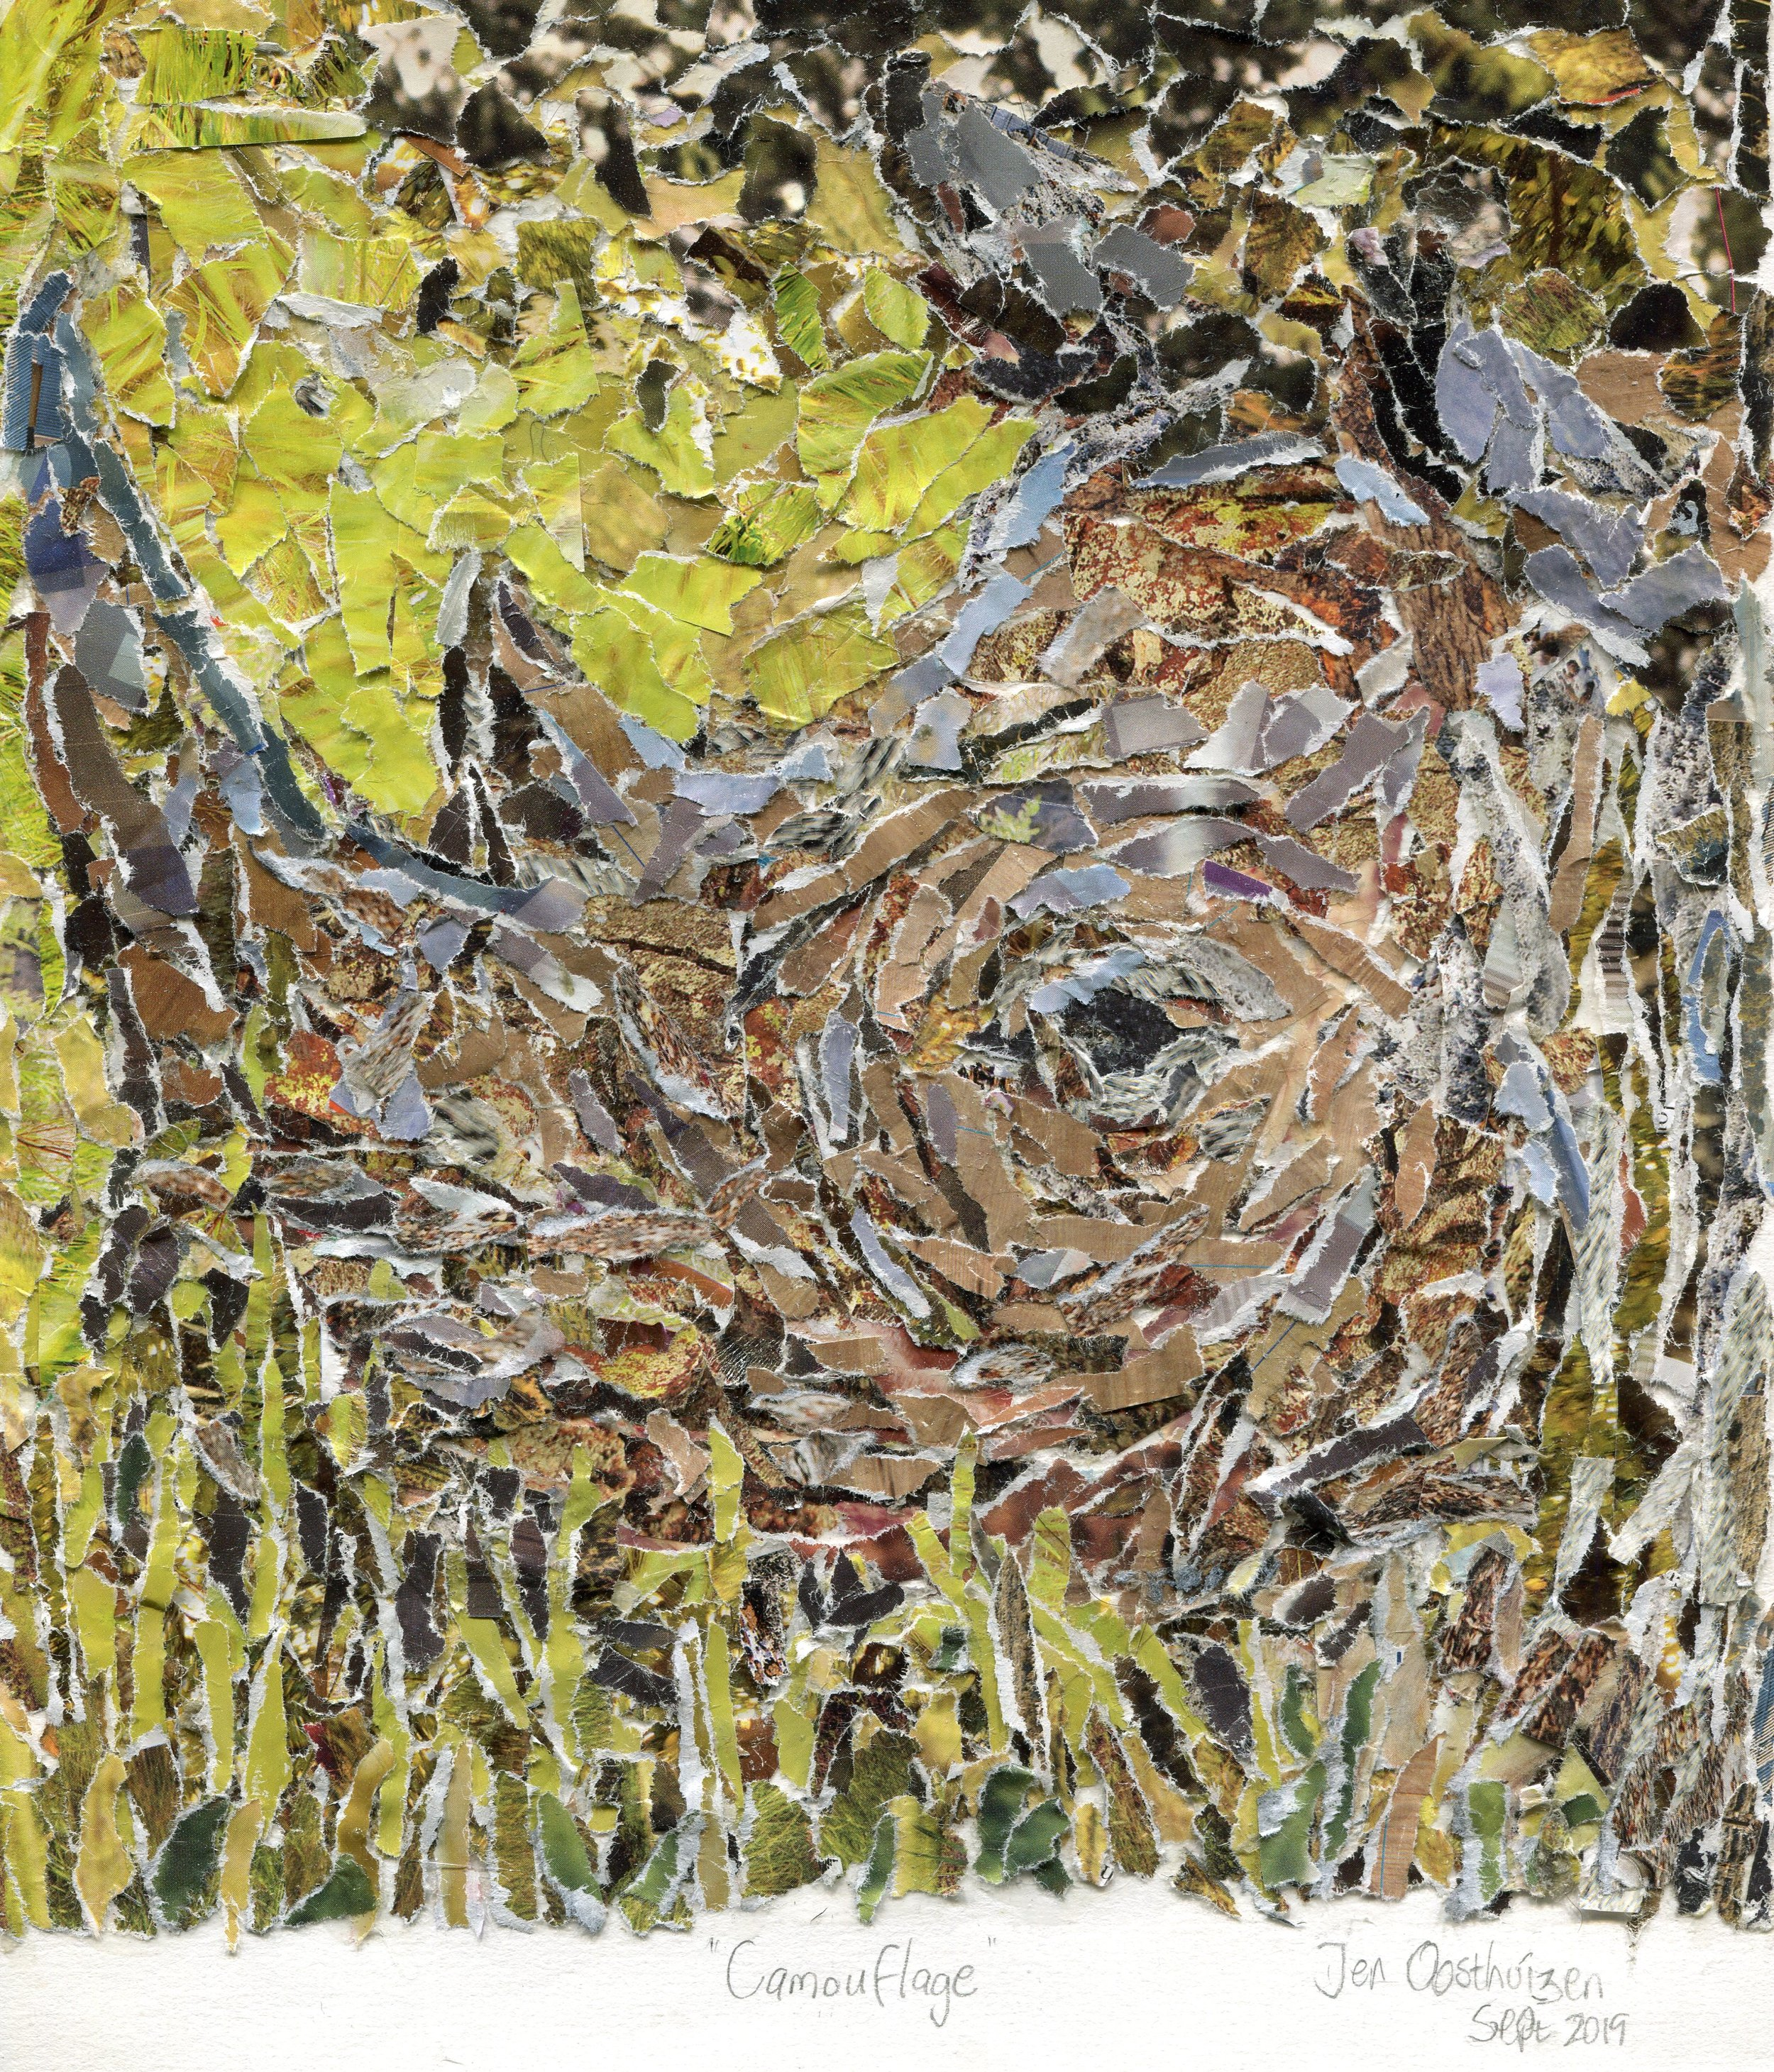 36a  Jen Oosthuizen  Camouflage  paper collage on paper